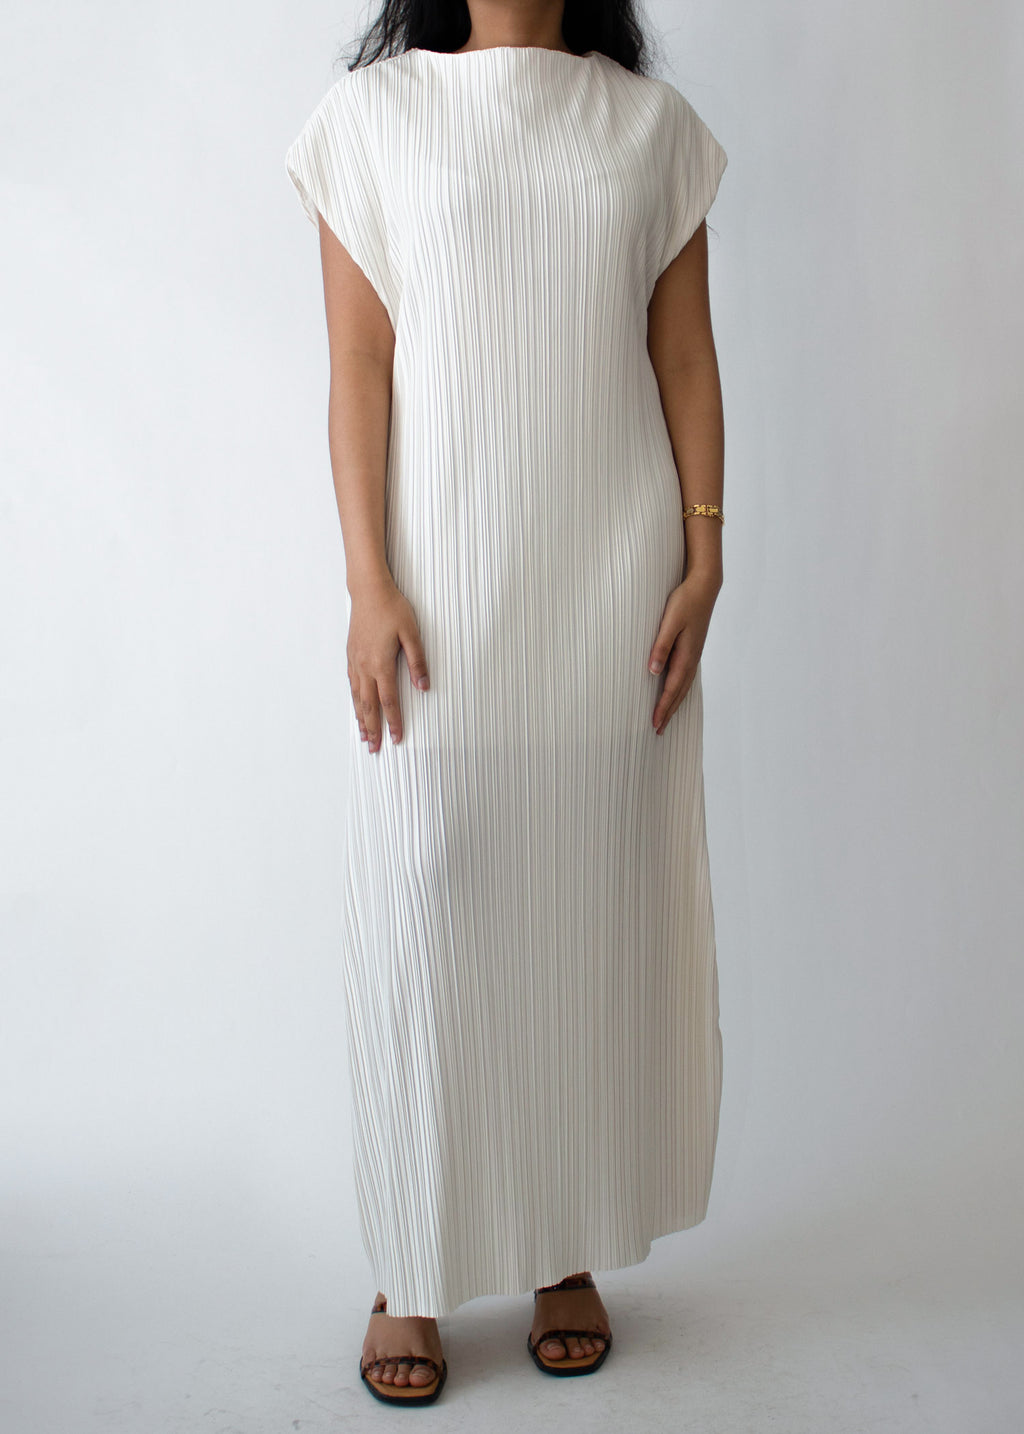 Pleated Long Dress in Ivory